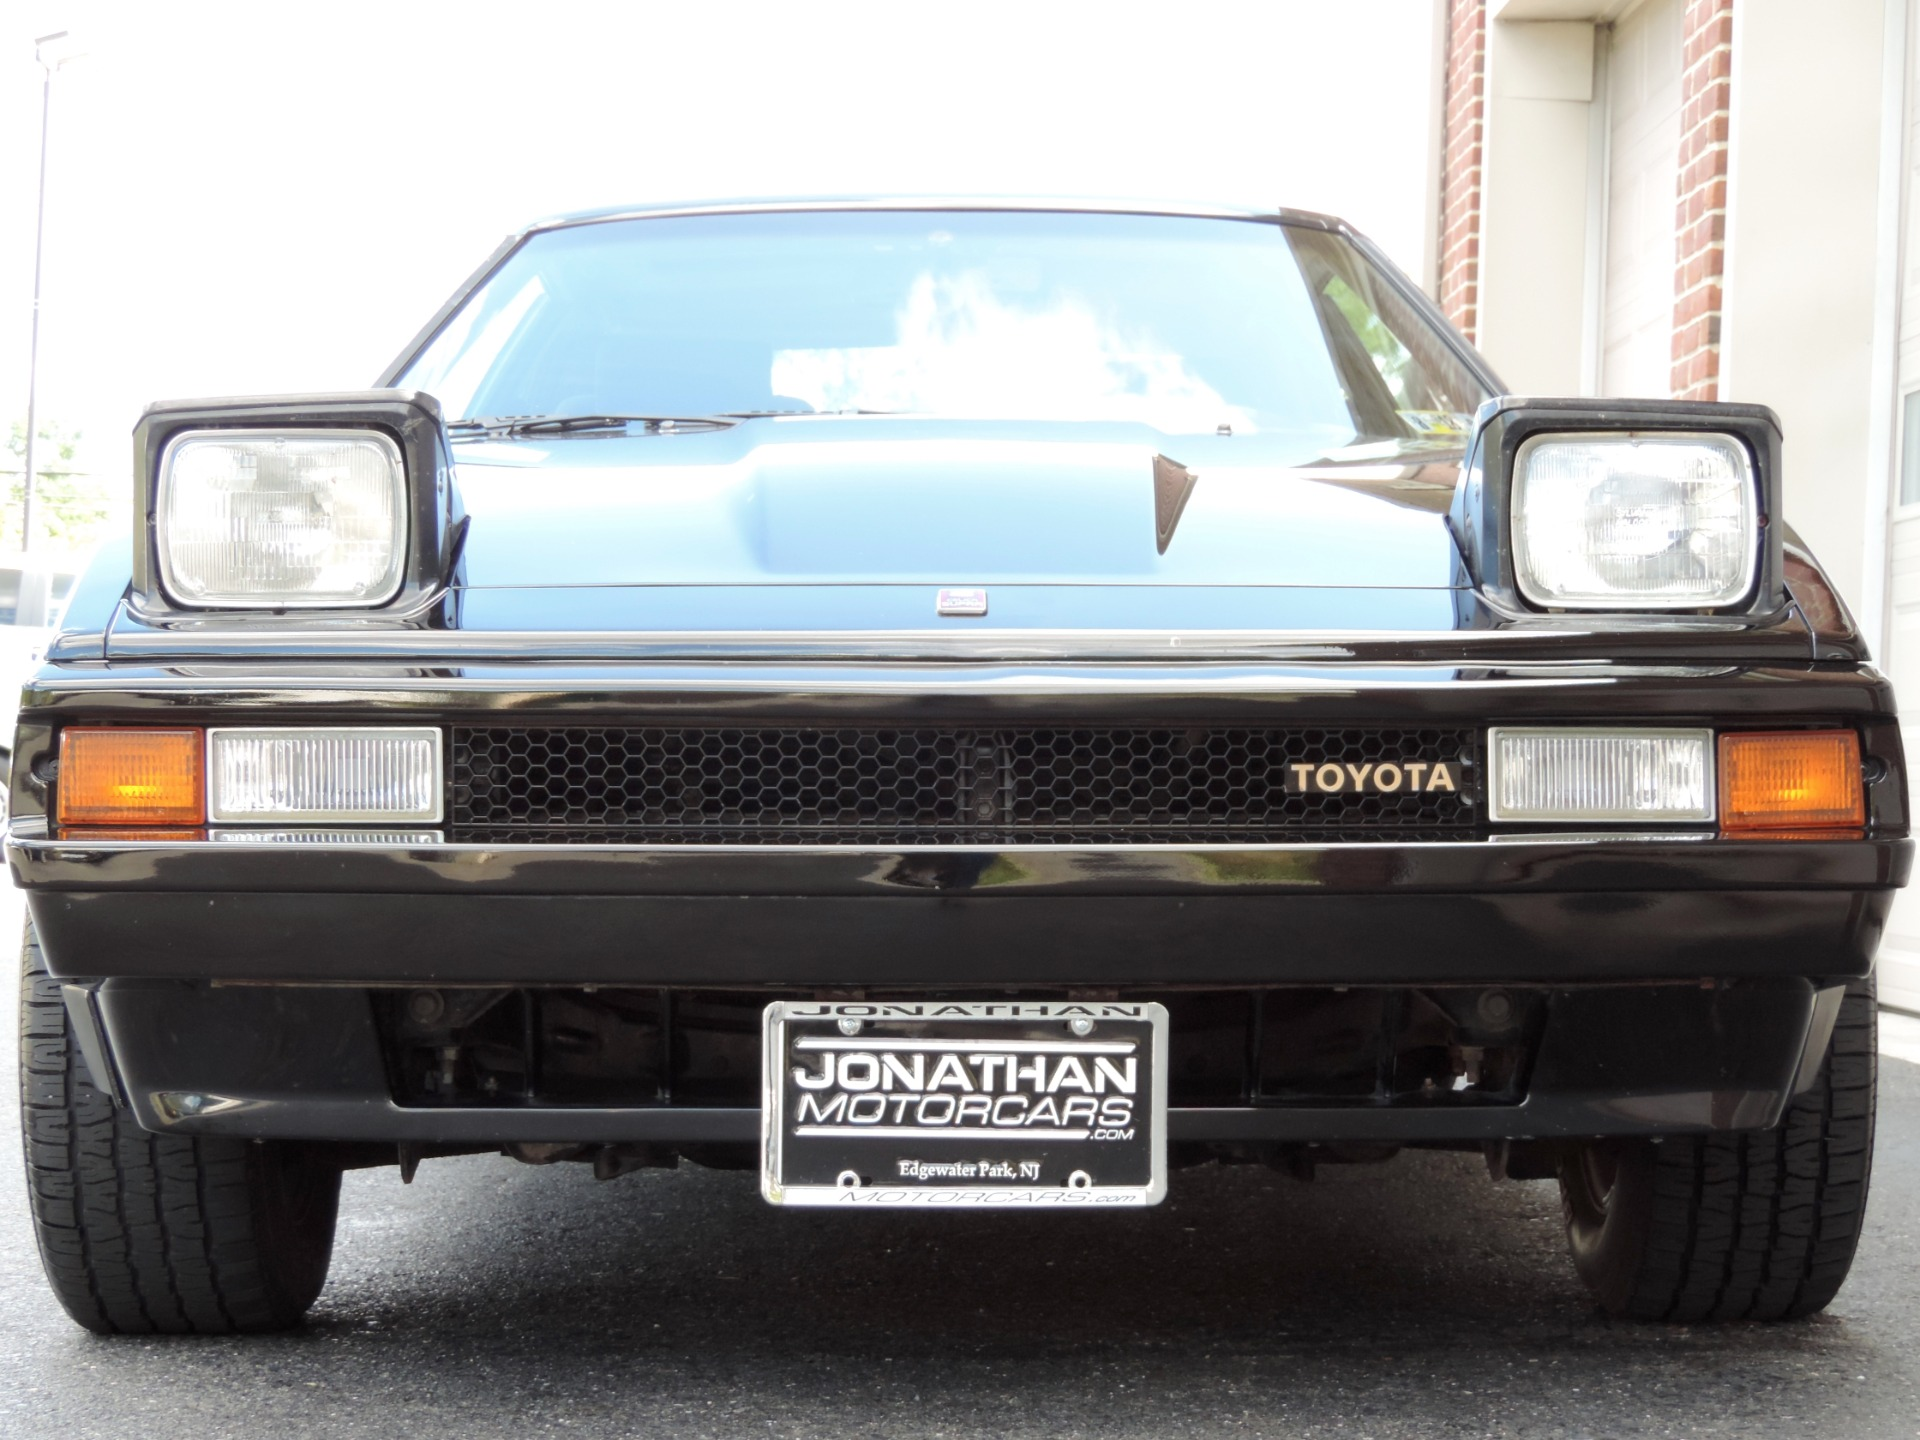 Toyota Dealers Nj >> 1982 Toyota Celica Supra Stock # 031620 for sale near Edgewater Park, NJ | NJ Toyota Dealer